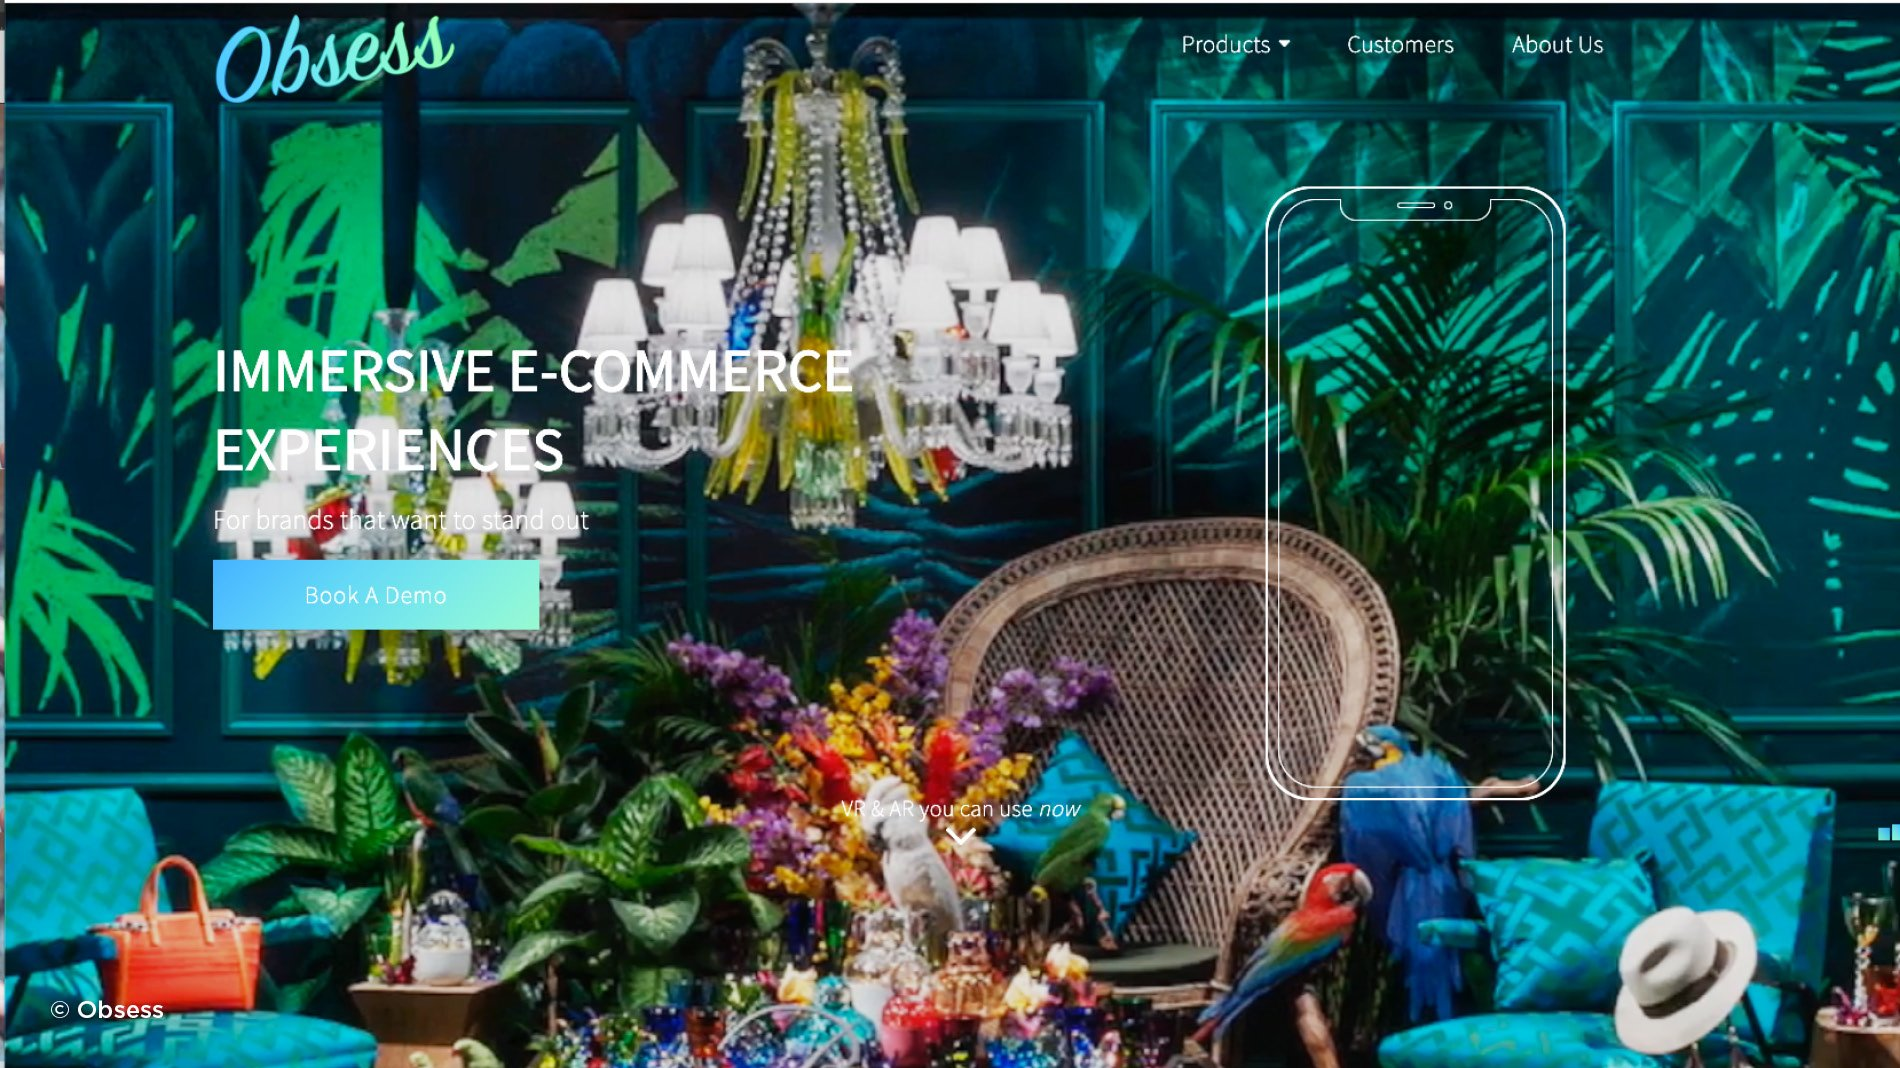 disruptive brand Obsess fighting the backlash on bland e-commerce with VR and AR stores